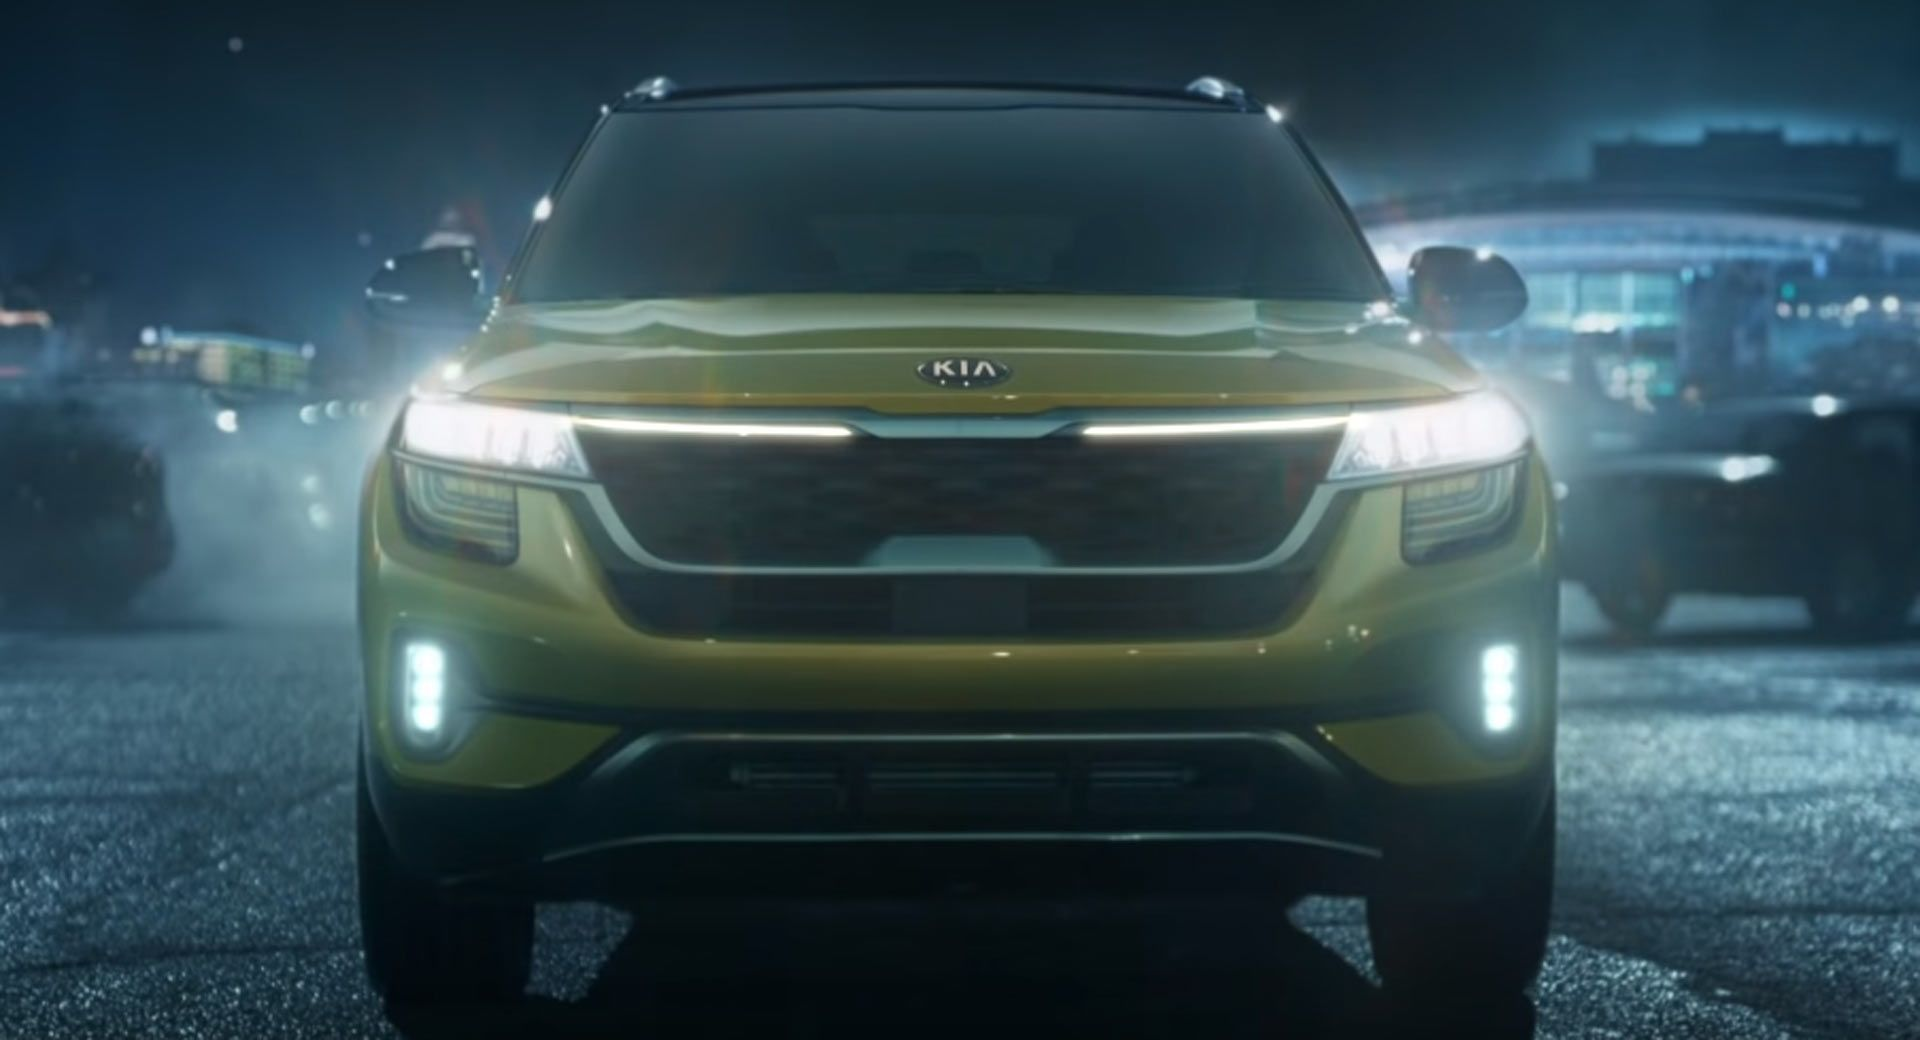 Kia S Super Bowl Commercial Stars The 2021 Seltos And Footballer Josh Jacobs Commercials Kia Kiaseltos Kiavideos Sup In 2020 Super Bowl Super Bowl Commercials Kia